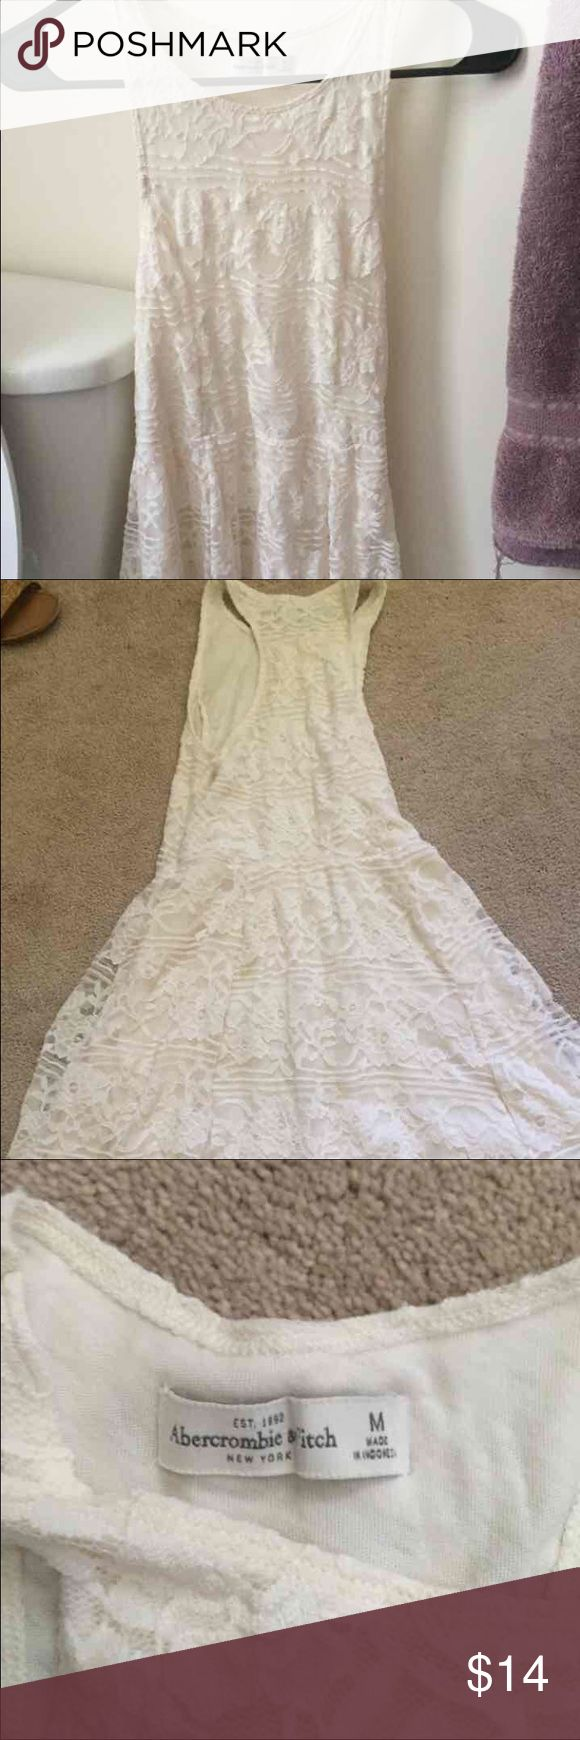 White Lace Abercrombie and Fitch dress White Abercrombie and Fitch dress super cute . Never wore it . Abercrombie & Fitch Dresses